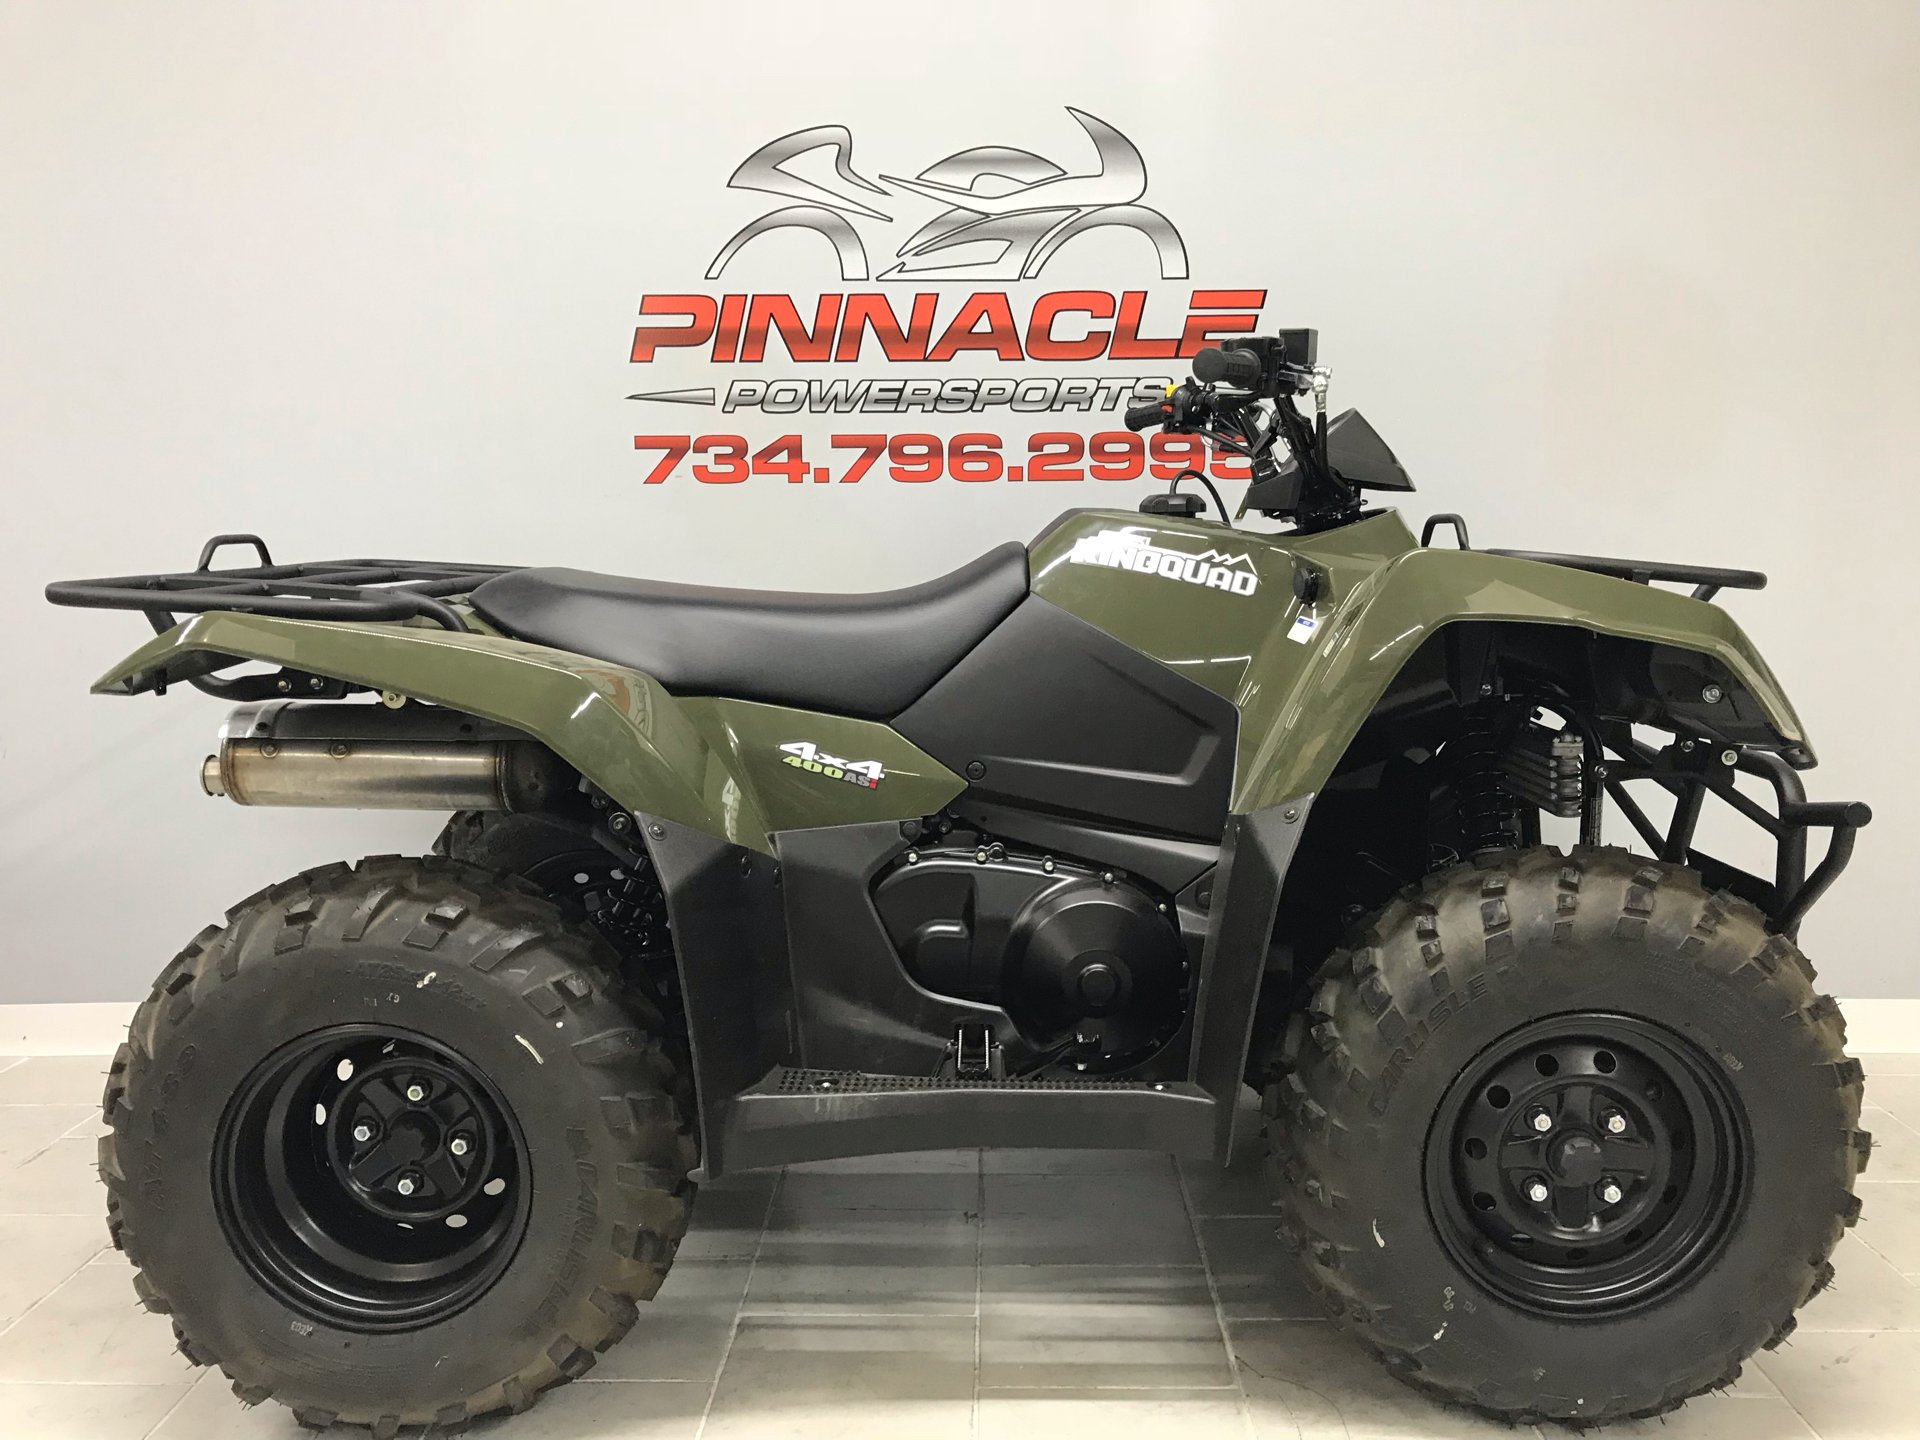 2020 Suzuki KingQuad 400ASi in Belleville, Michigan - Photo 1